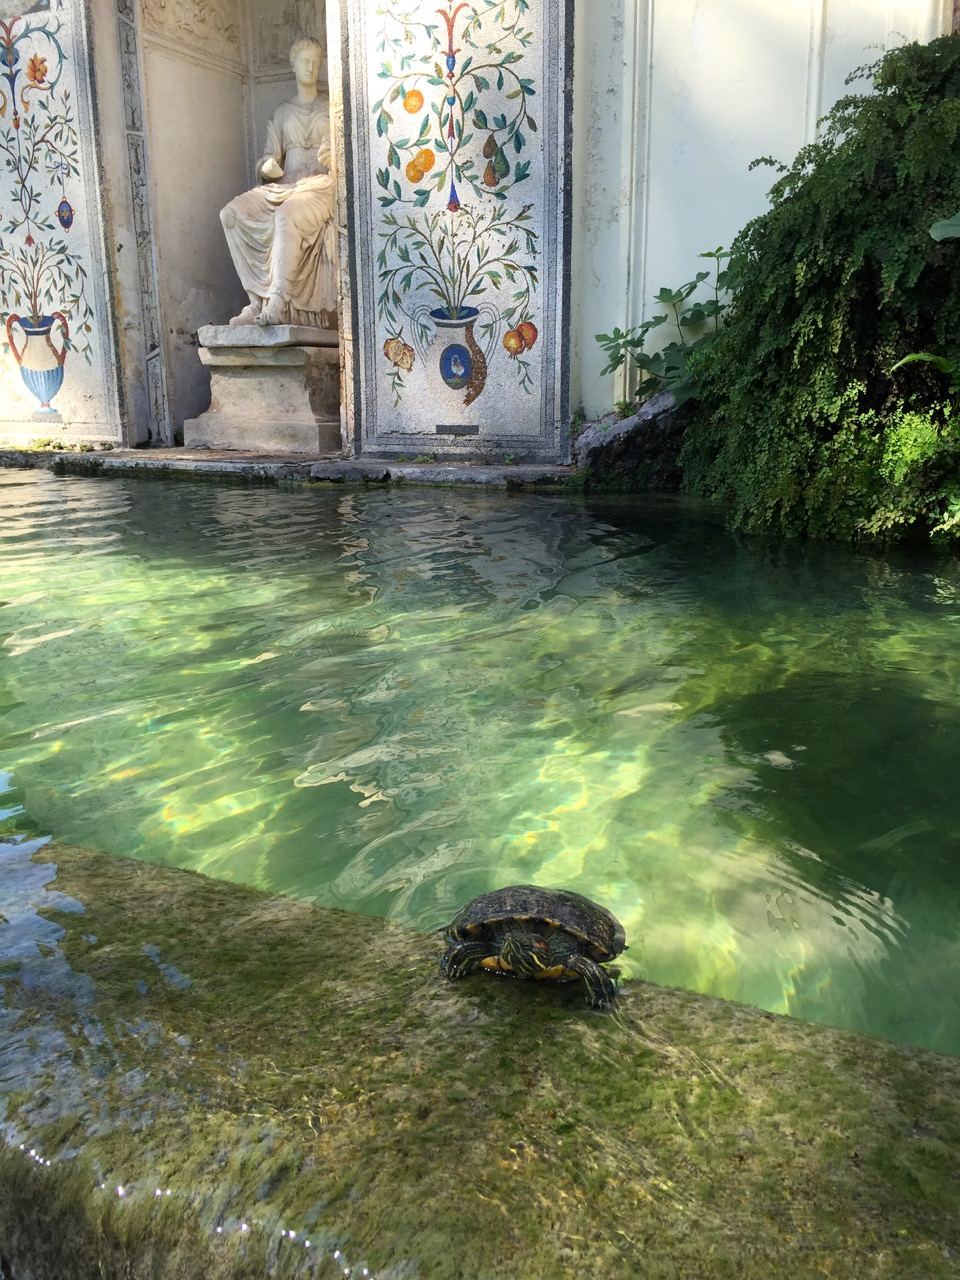 fountain in gardens at vatican, with turtle